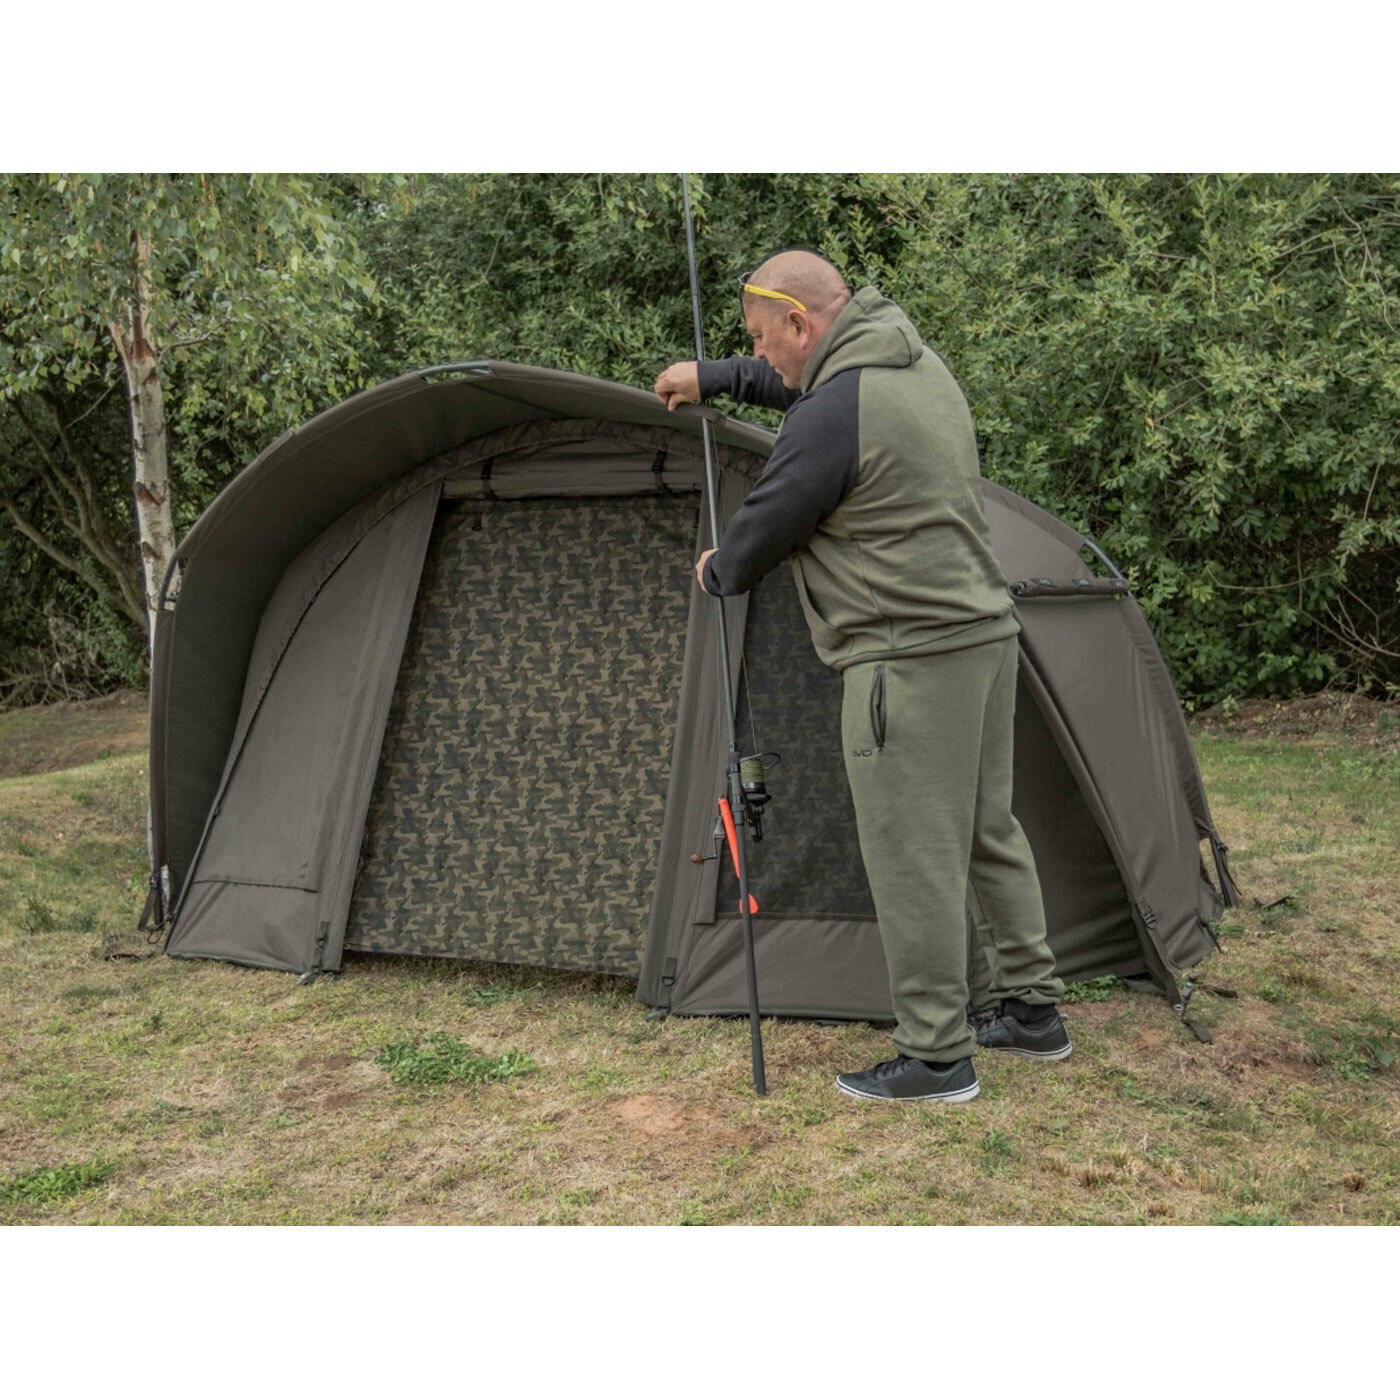 Avid HQ Dual Layer Bivvy - One Man New 2019 - Free Delivery